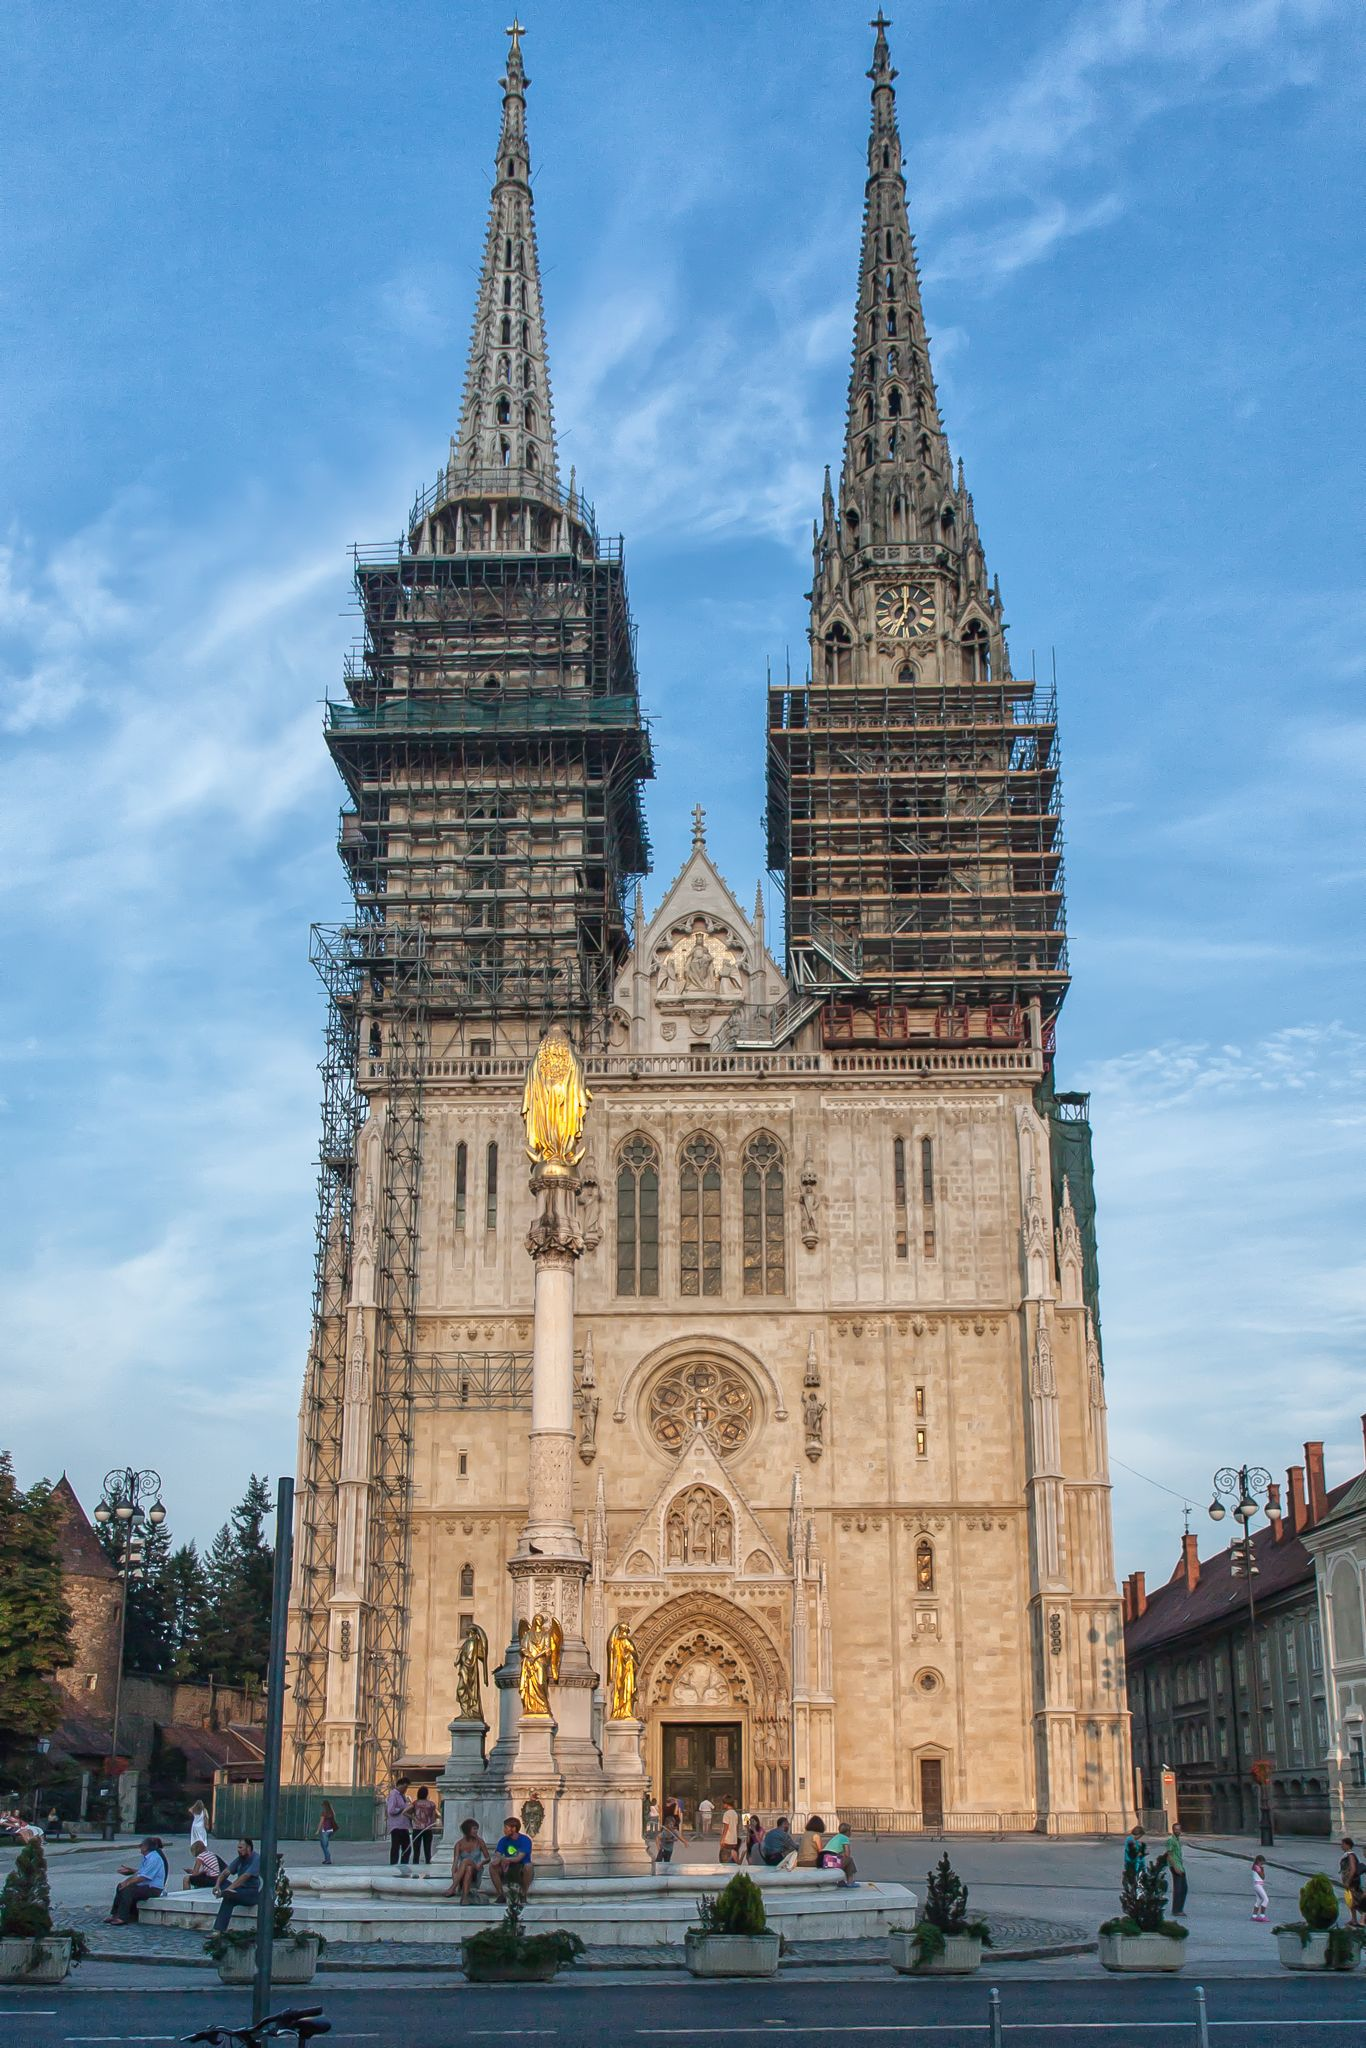 Http Travelnotesfromtheworld Airportconnection It The Zagreb Cathedral On Kaptol Is A Roman Catholic Institution And The Talles Zagreb Cathedral Croatia